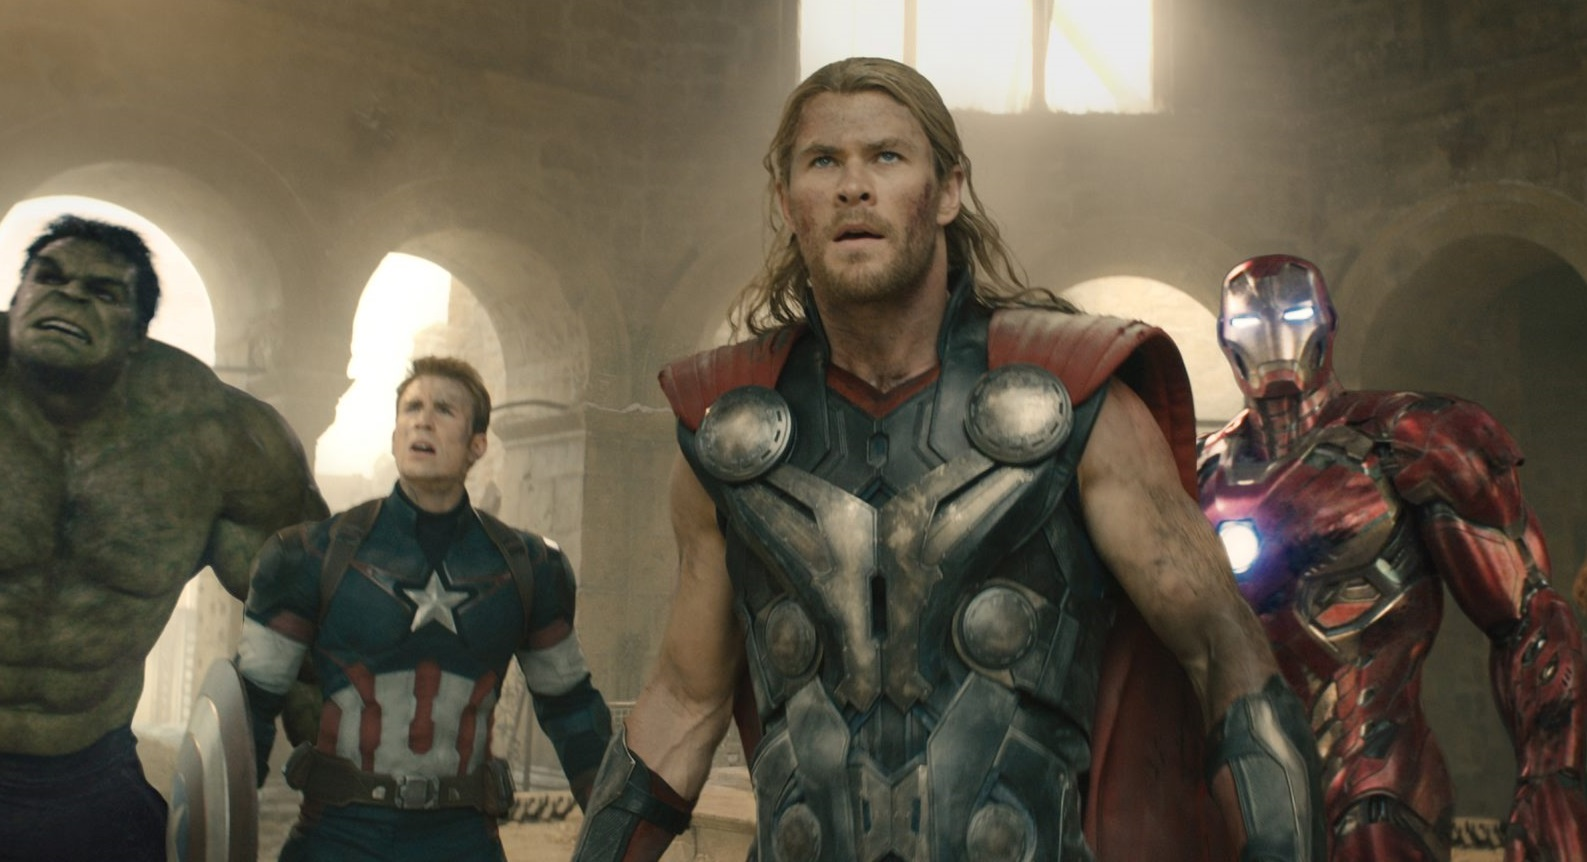 Marvel's 'Avengers: Age Of Ultron' is just one of a litany of comic movies released over the last five years.